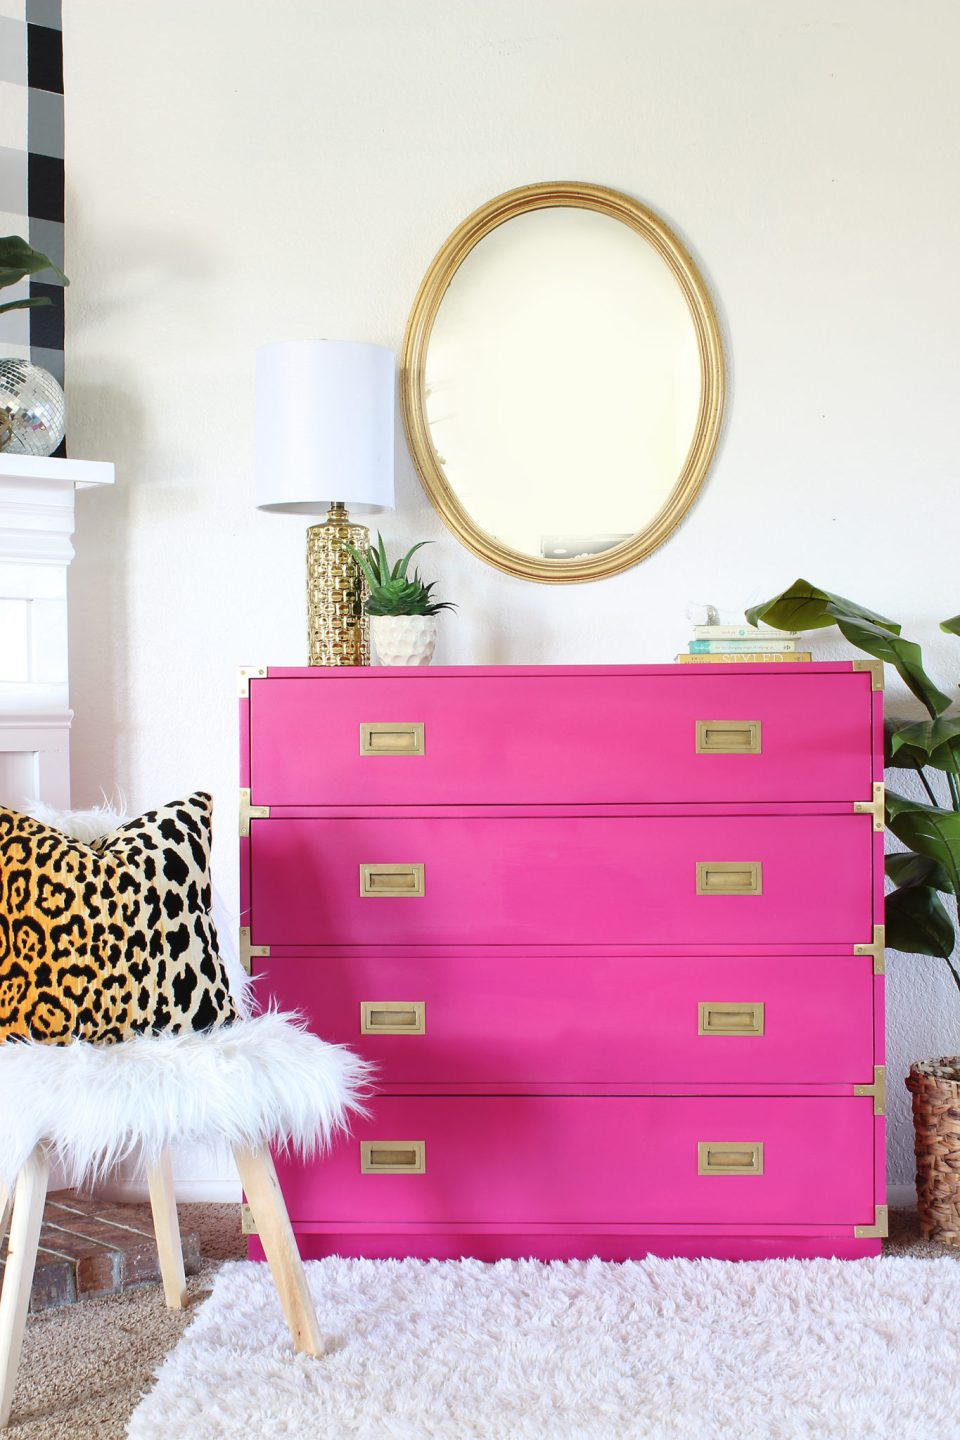 5 Tips for Valentine's Day Inspired Home Decor